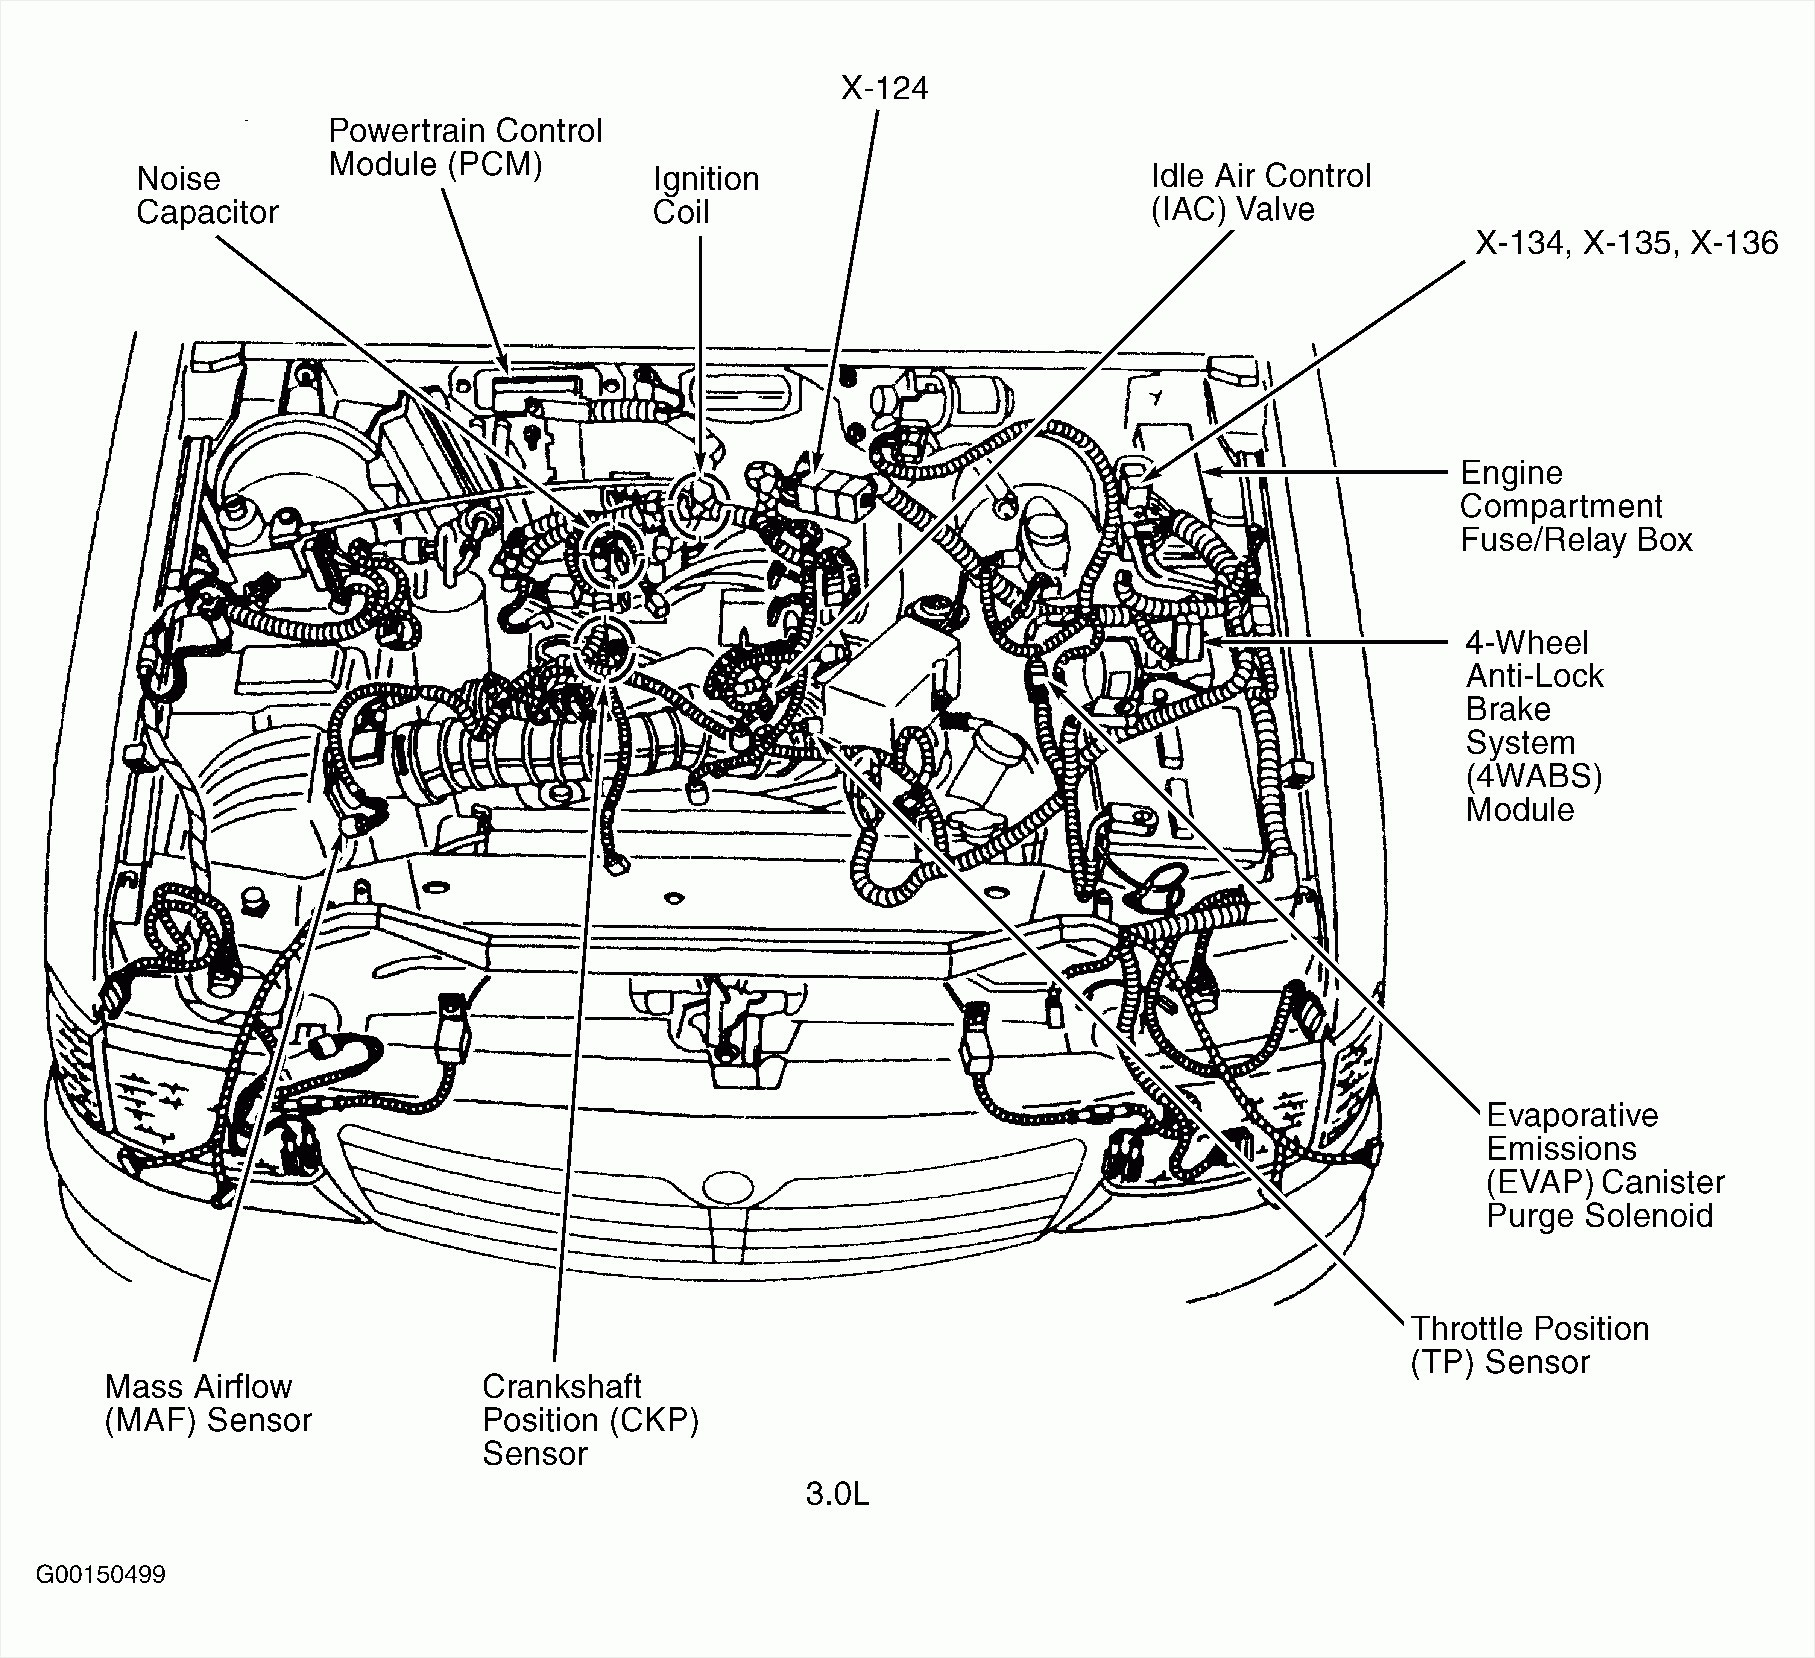 1989 Ford Taurus Sho Engine Diagram - Wiring Diagram Tri  Ford Taurus Wiring Diagram on ford taurus dash lights, ford taurus spark plug diagram, ford taurus air conditioning, ford taurus solenoid diagram, ford taurus ground point locations, ford taurus door, ford taurus bracket diagram, ford taurus pcm diagram, ford taurus fuel diagram, 2004 ford taurus electrical diagram, ford taurus speaker size, ford taurus steering, ford taurus fan wiring, ford taurus horn, ford taurus body, ford engine wire diagram, ford taurus front axle diagram, 1993 ford explorer speaker wire diagram, ford taurus shift solenoid, ford taurus assembly diagram,